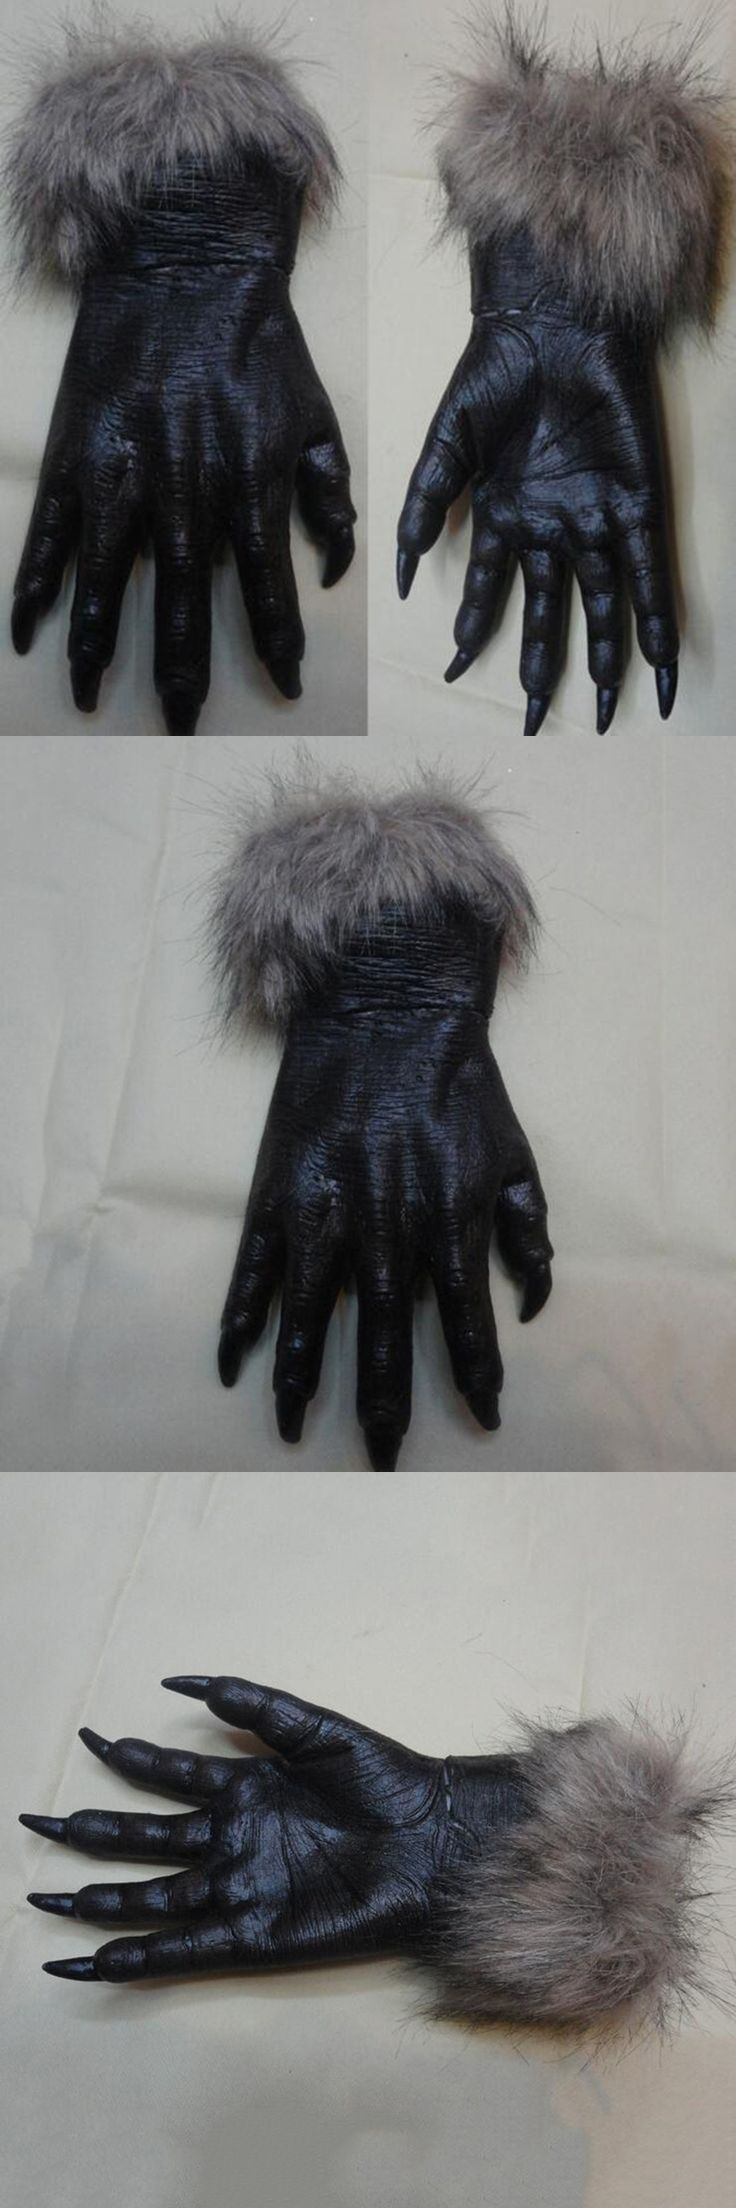 Hot! New Arrivals Werewolf Black Wolf Paws Claws Cosplay Gloves For Halloween Party Costume Accessory Women Men Masquerade